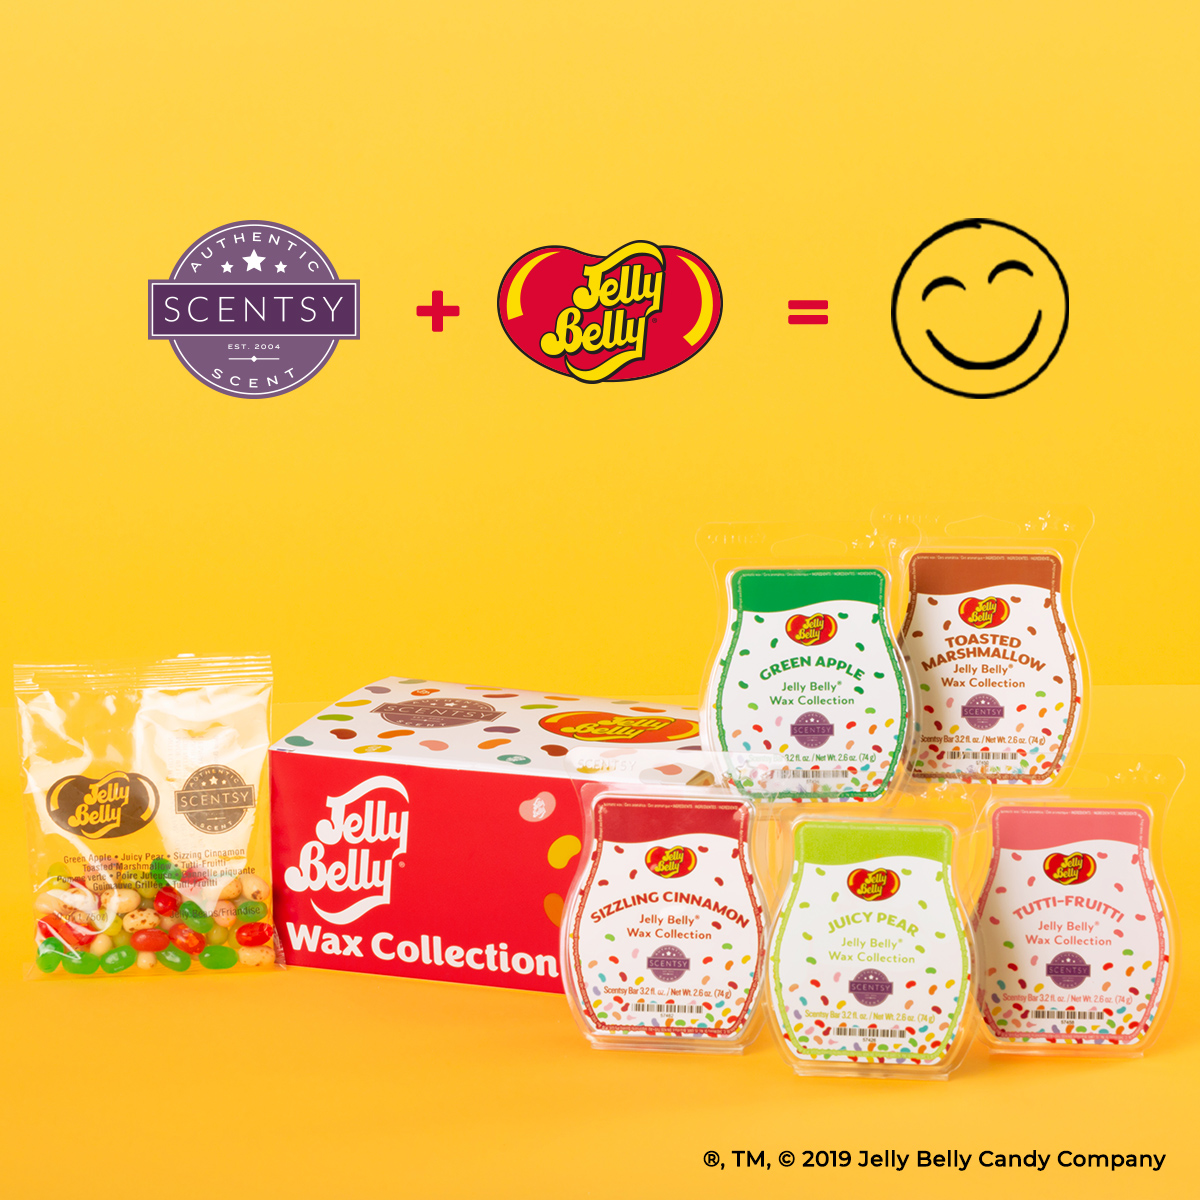 Get the Scentsy Jelly Belly wax collection for sale NOW at getascent.com!